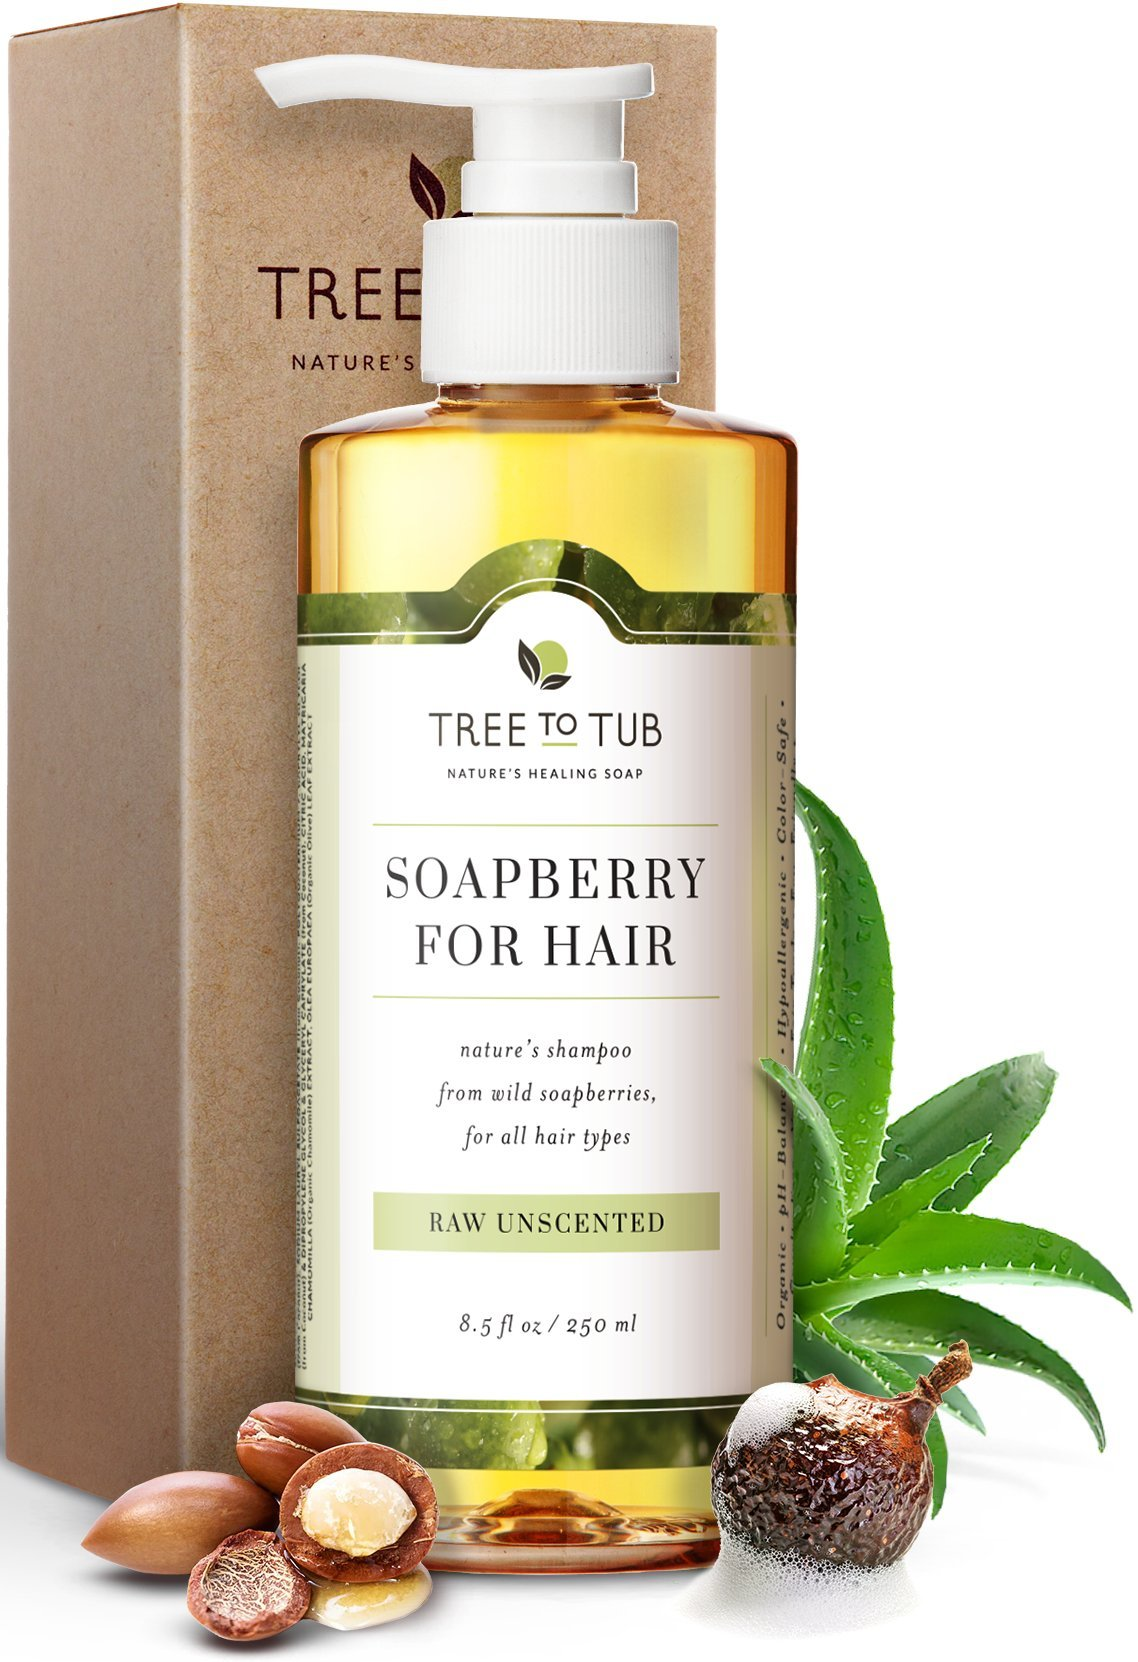 Ultra Gentle Shampoo for Very Sensitive Skin by Tree To Tub | pH 5.5 Balanced & Hypoallergenic Fragrance Free Shampoo for Damaged Scalp, Psoriasis, with Organic Moroccan Oil, Wild Soapberries 8.5 oz by Tree to Tub